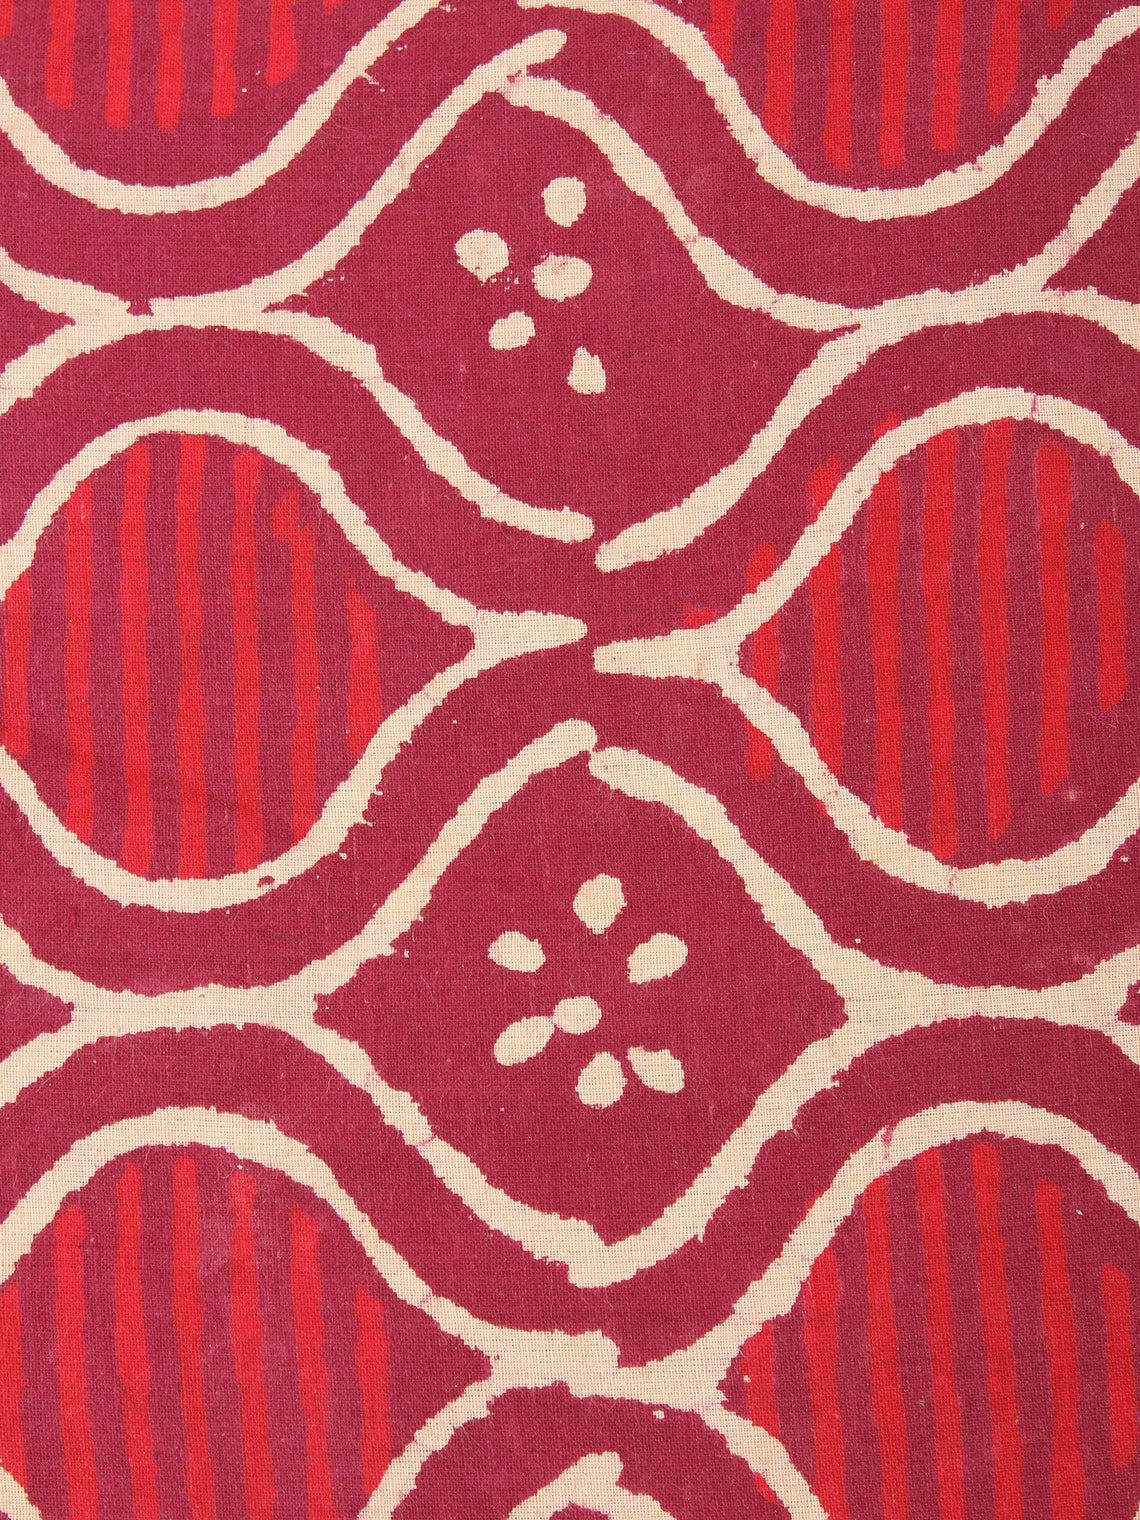 Red Beige Natural Dyed Hand Block Printed Cotton Fabric Per Meter - F0916215